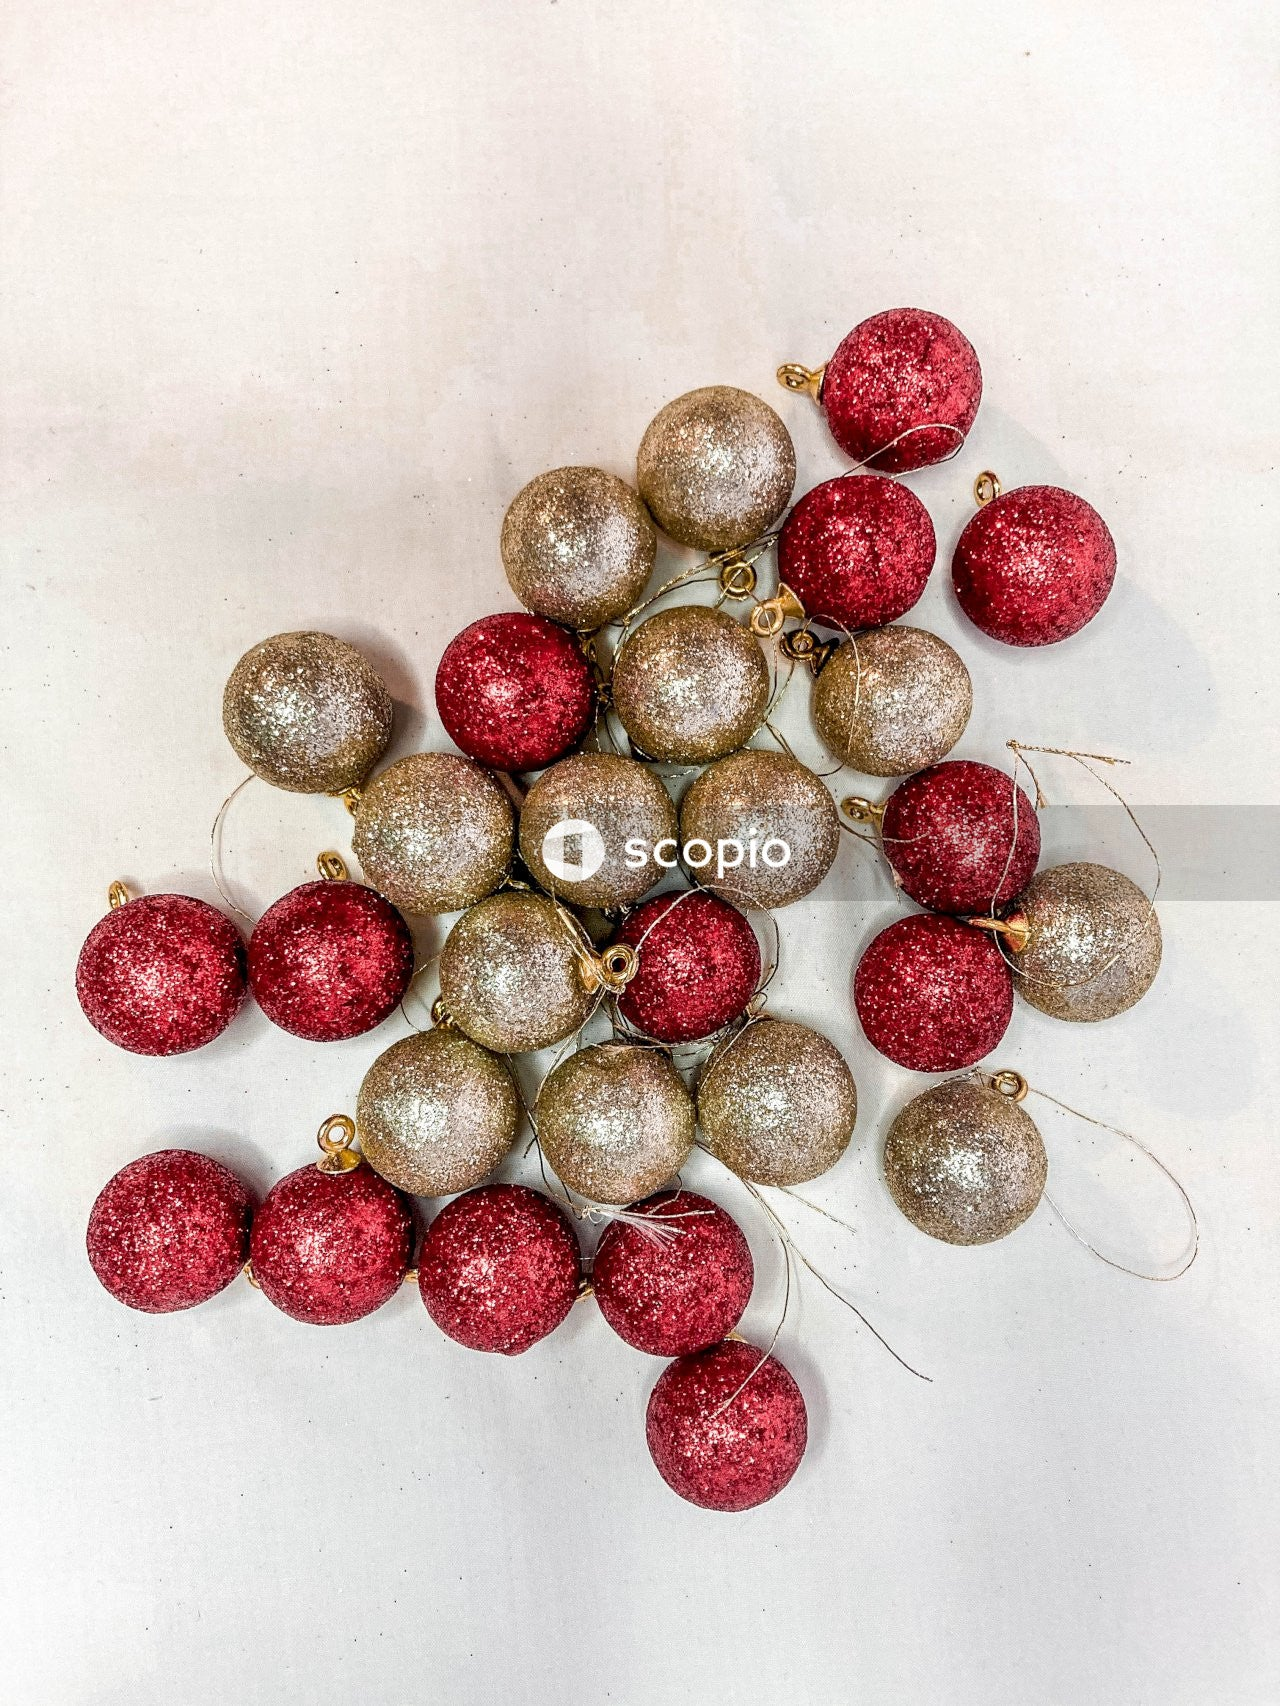 Red and brown round fruit